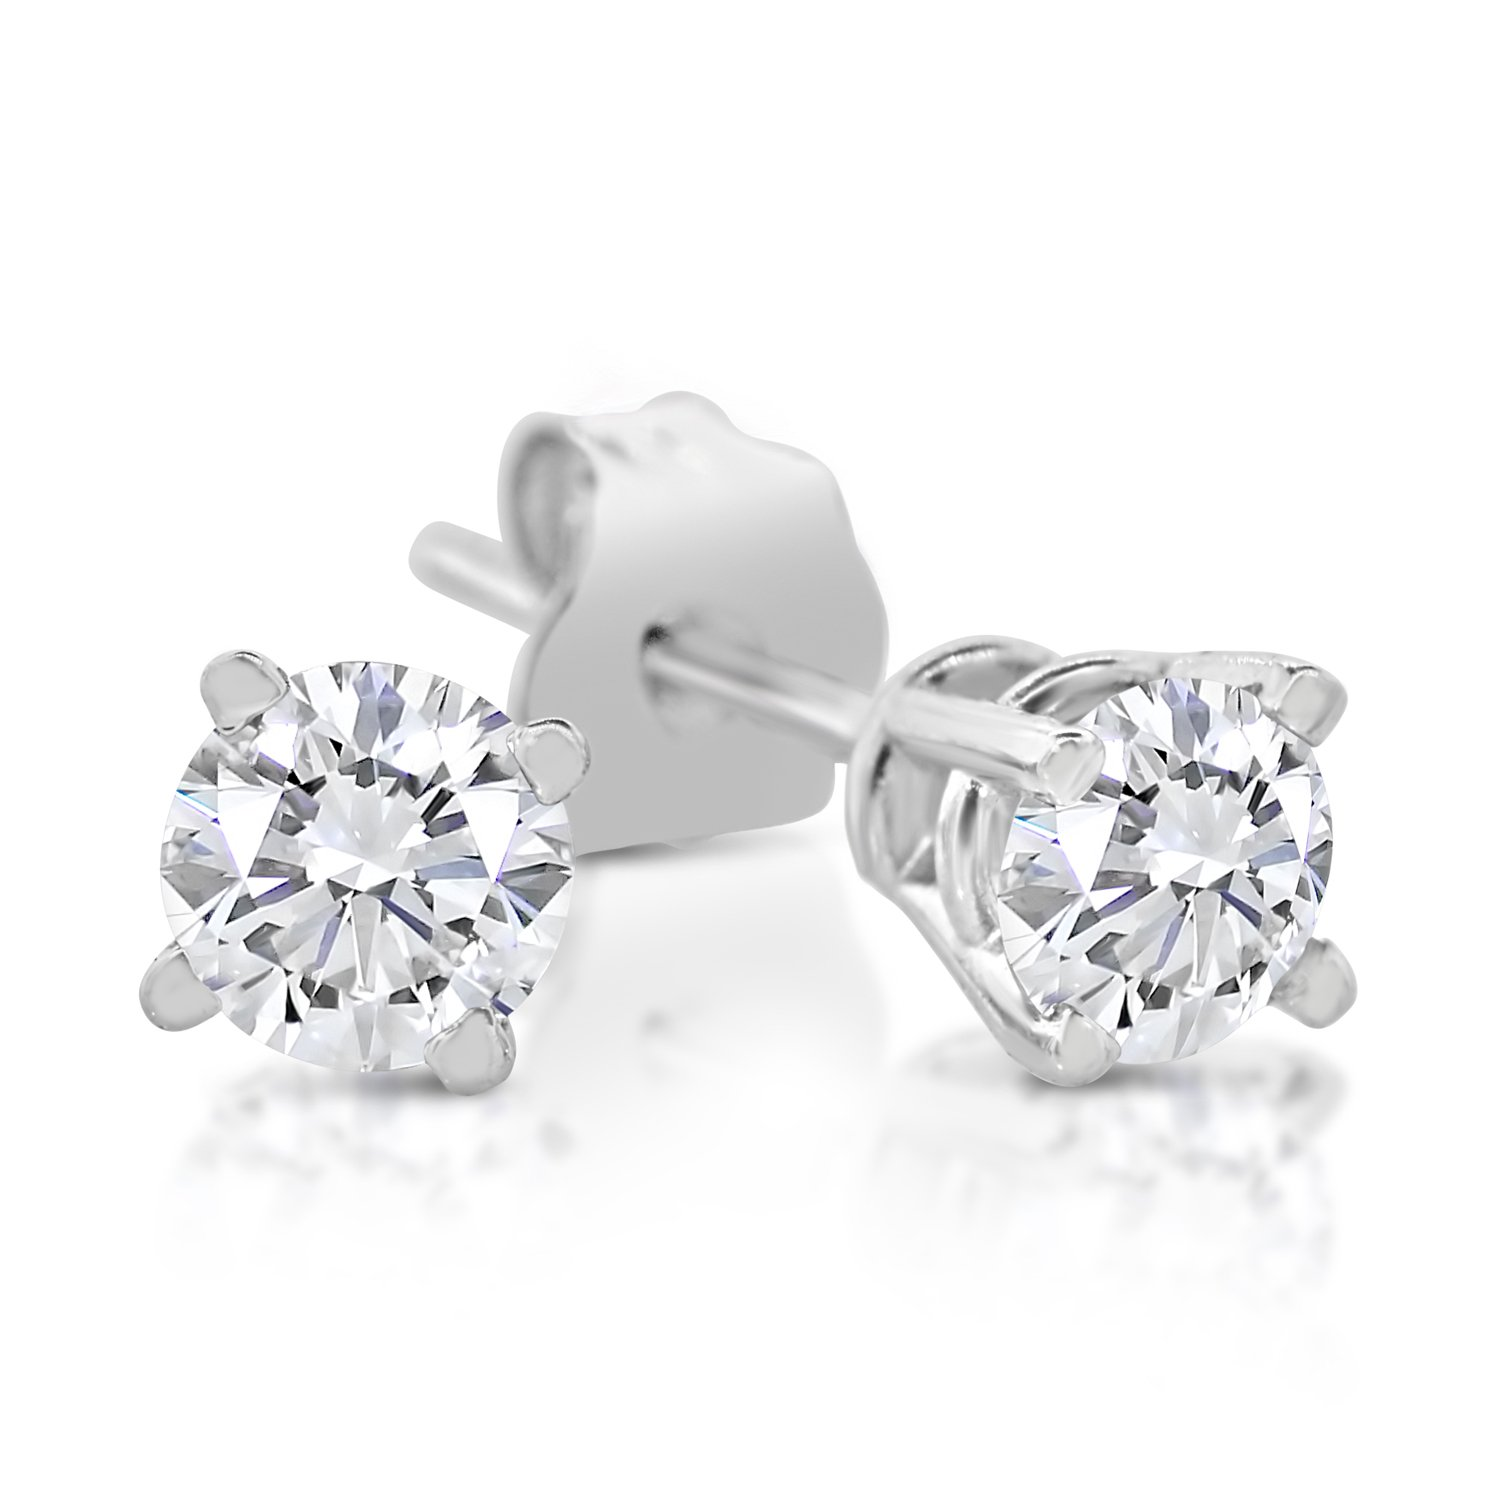 1/4ct tw Diamond Stud Earring in 14k White Gold